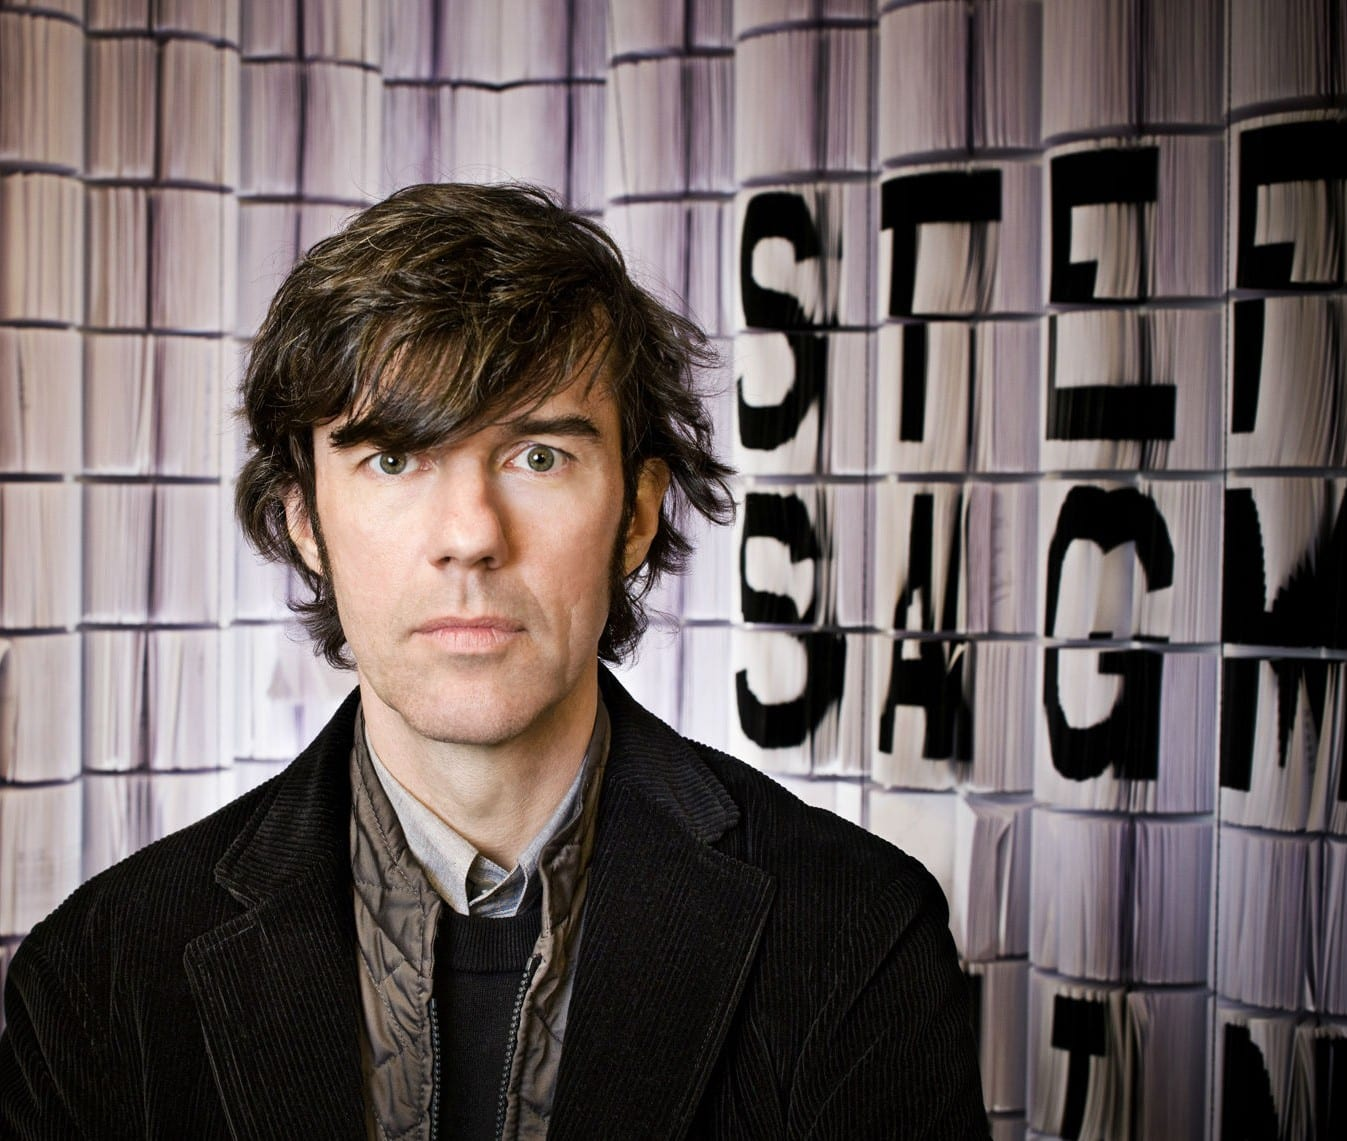 The Museum of Vancouver presents Stefan Sagmeister: The Happy Show Exhibition